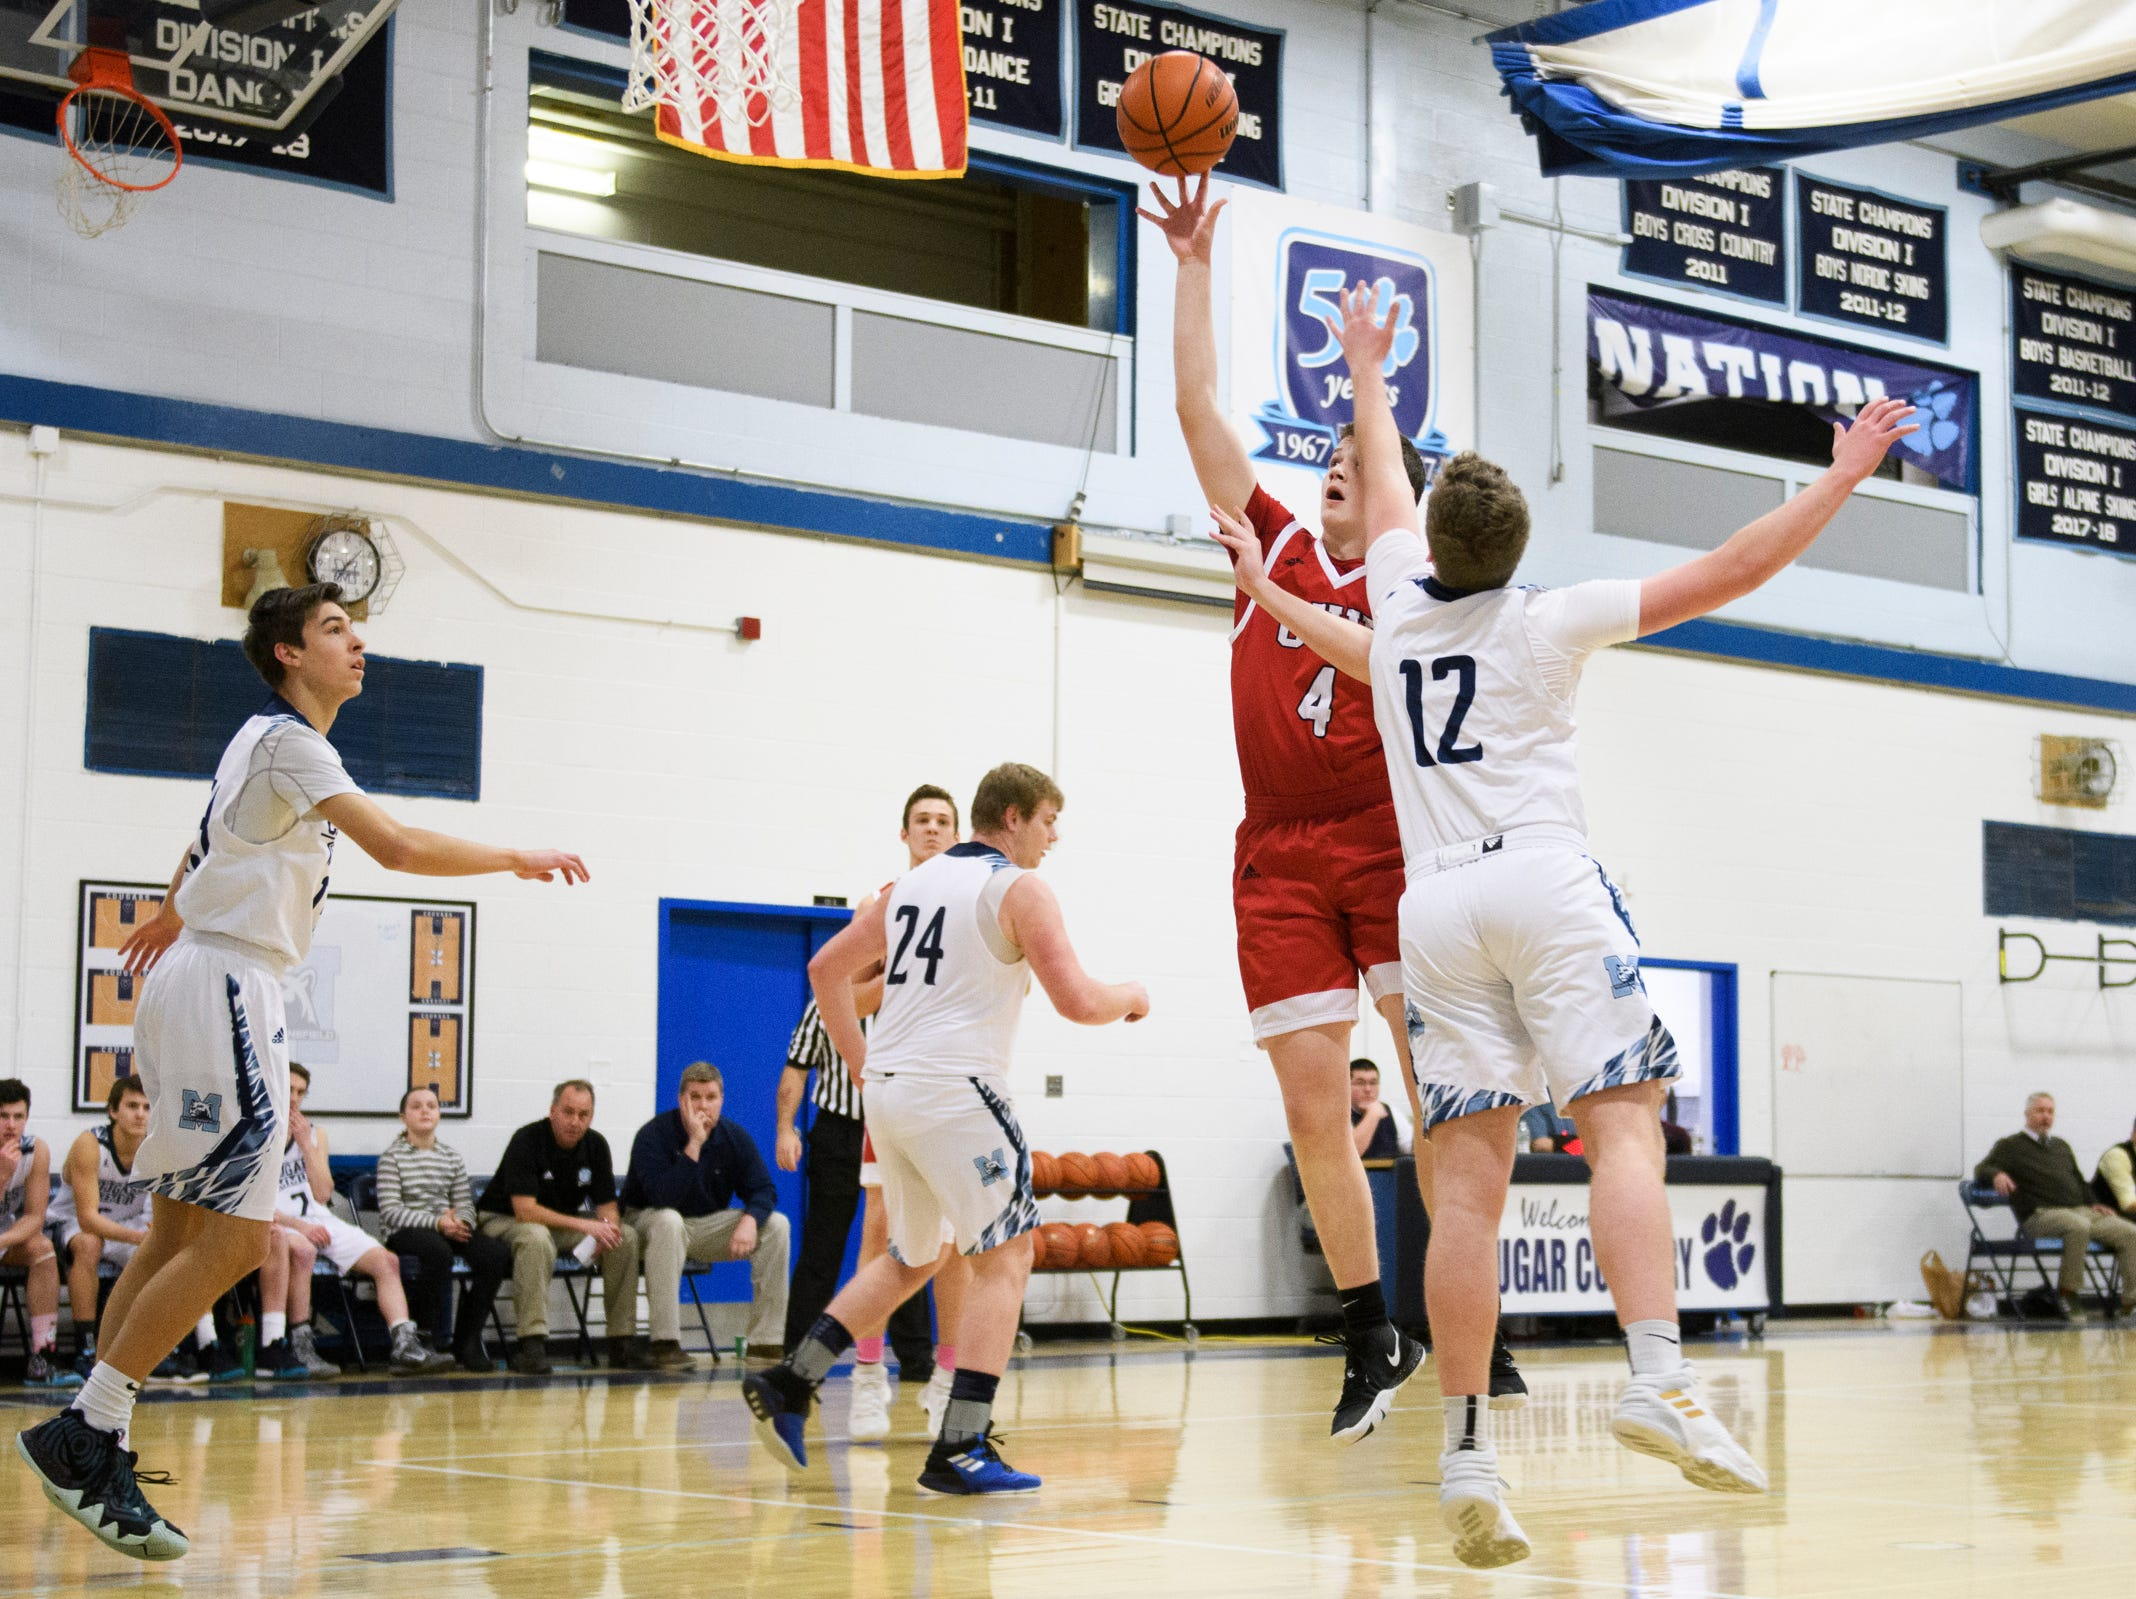 CVU's Mason Otley (4) leaps past MMU's Asa Carlson (12) to take a shot during the boys basketball game between the Champlain Valley Union Redhawks and the Mount Mansfield Cougars at MMU High School on Tuesday night January 22, 2019 in Jericho.